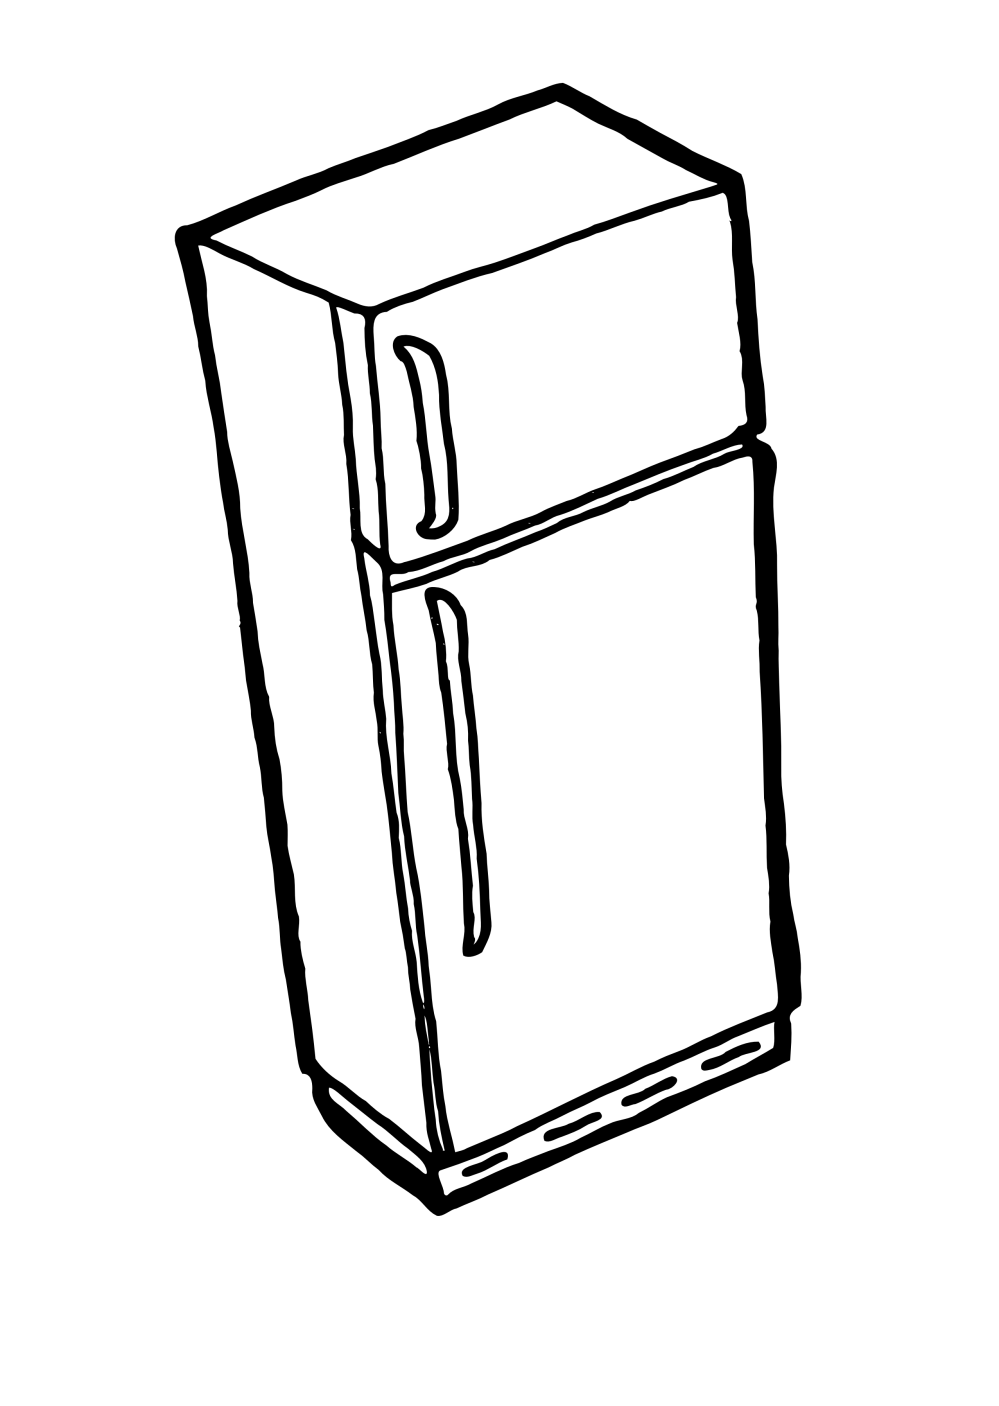 medium resolution of book clipart black and white black and white books clip art